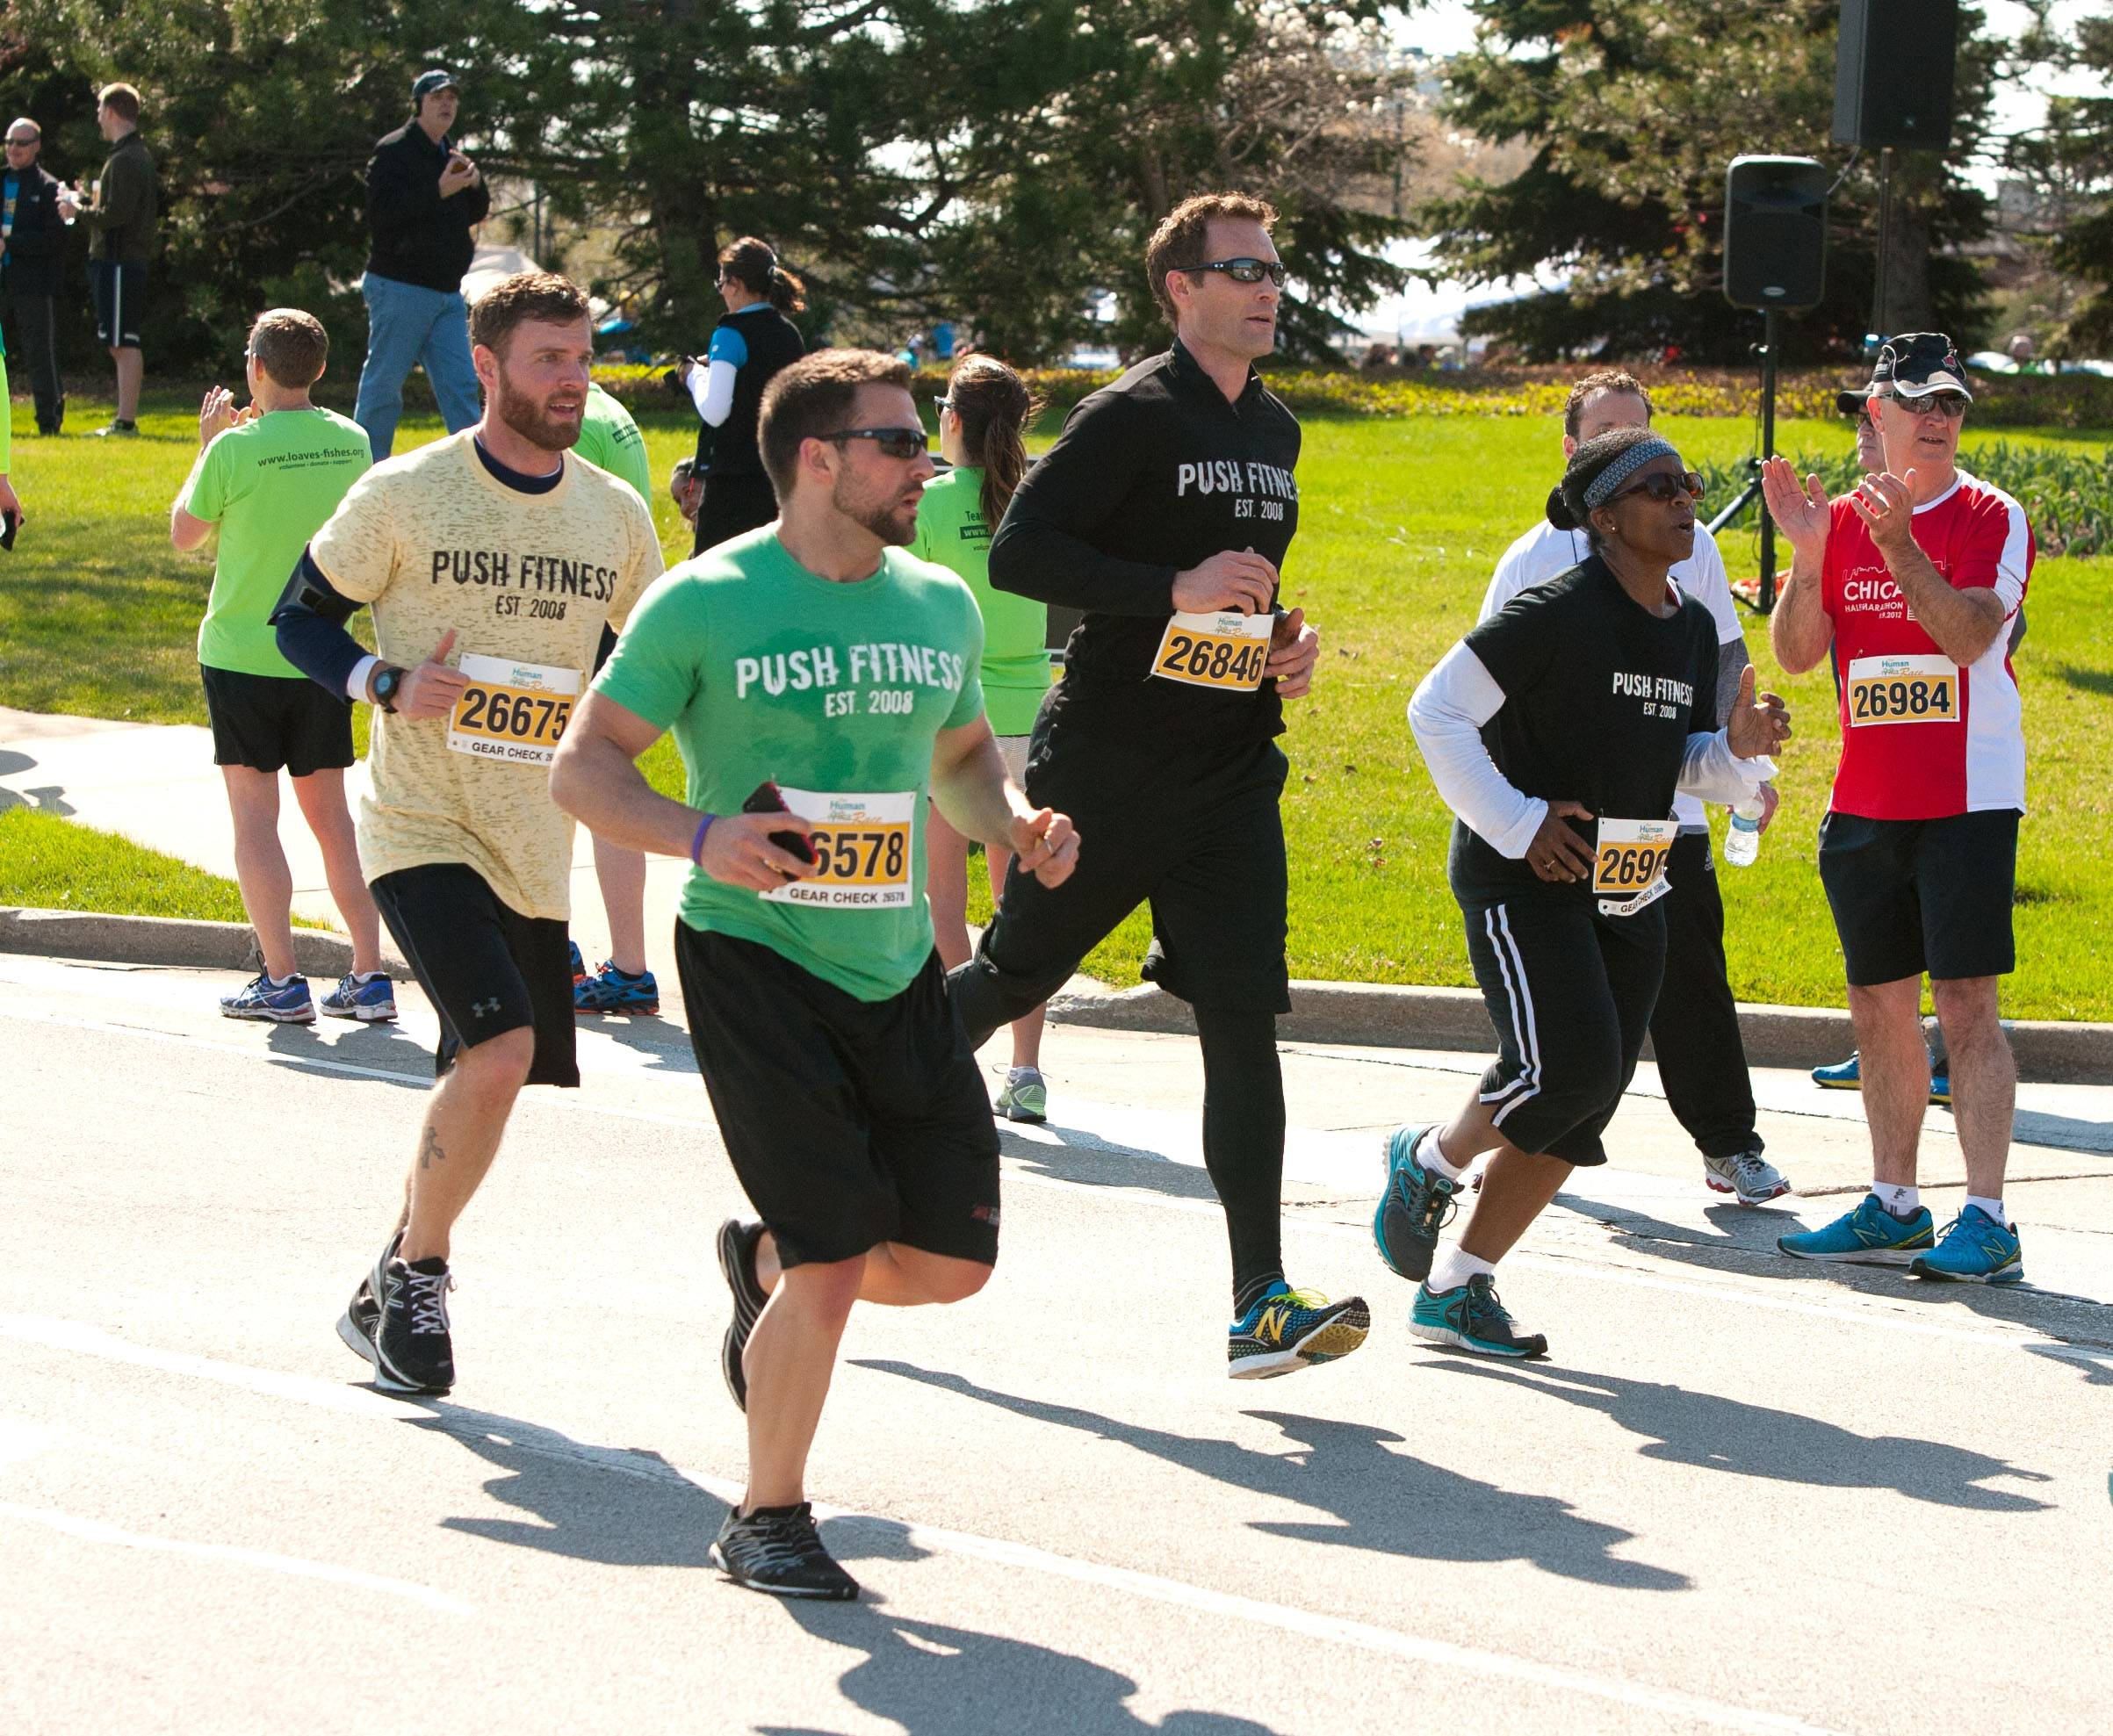 Joshua Steckler and Lisa Townsel, in black T-shirts, ran side-by-side the whole race.